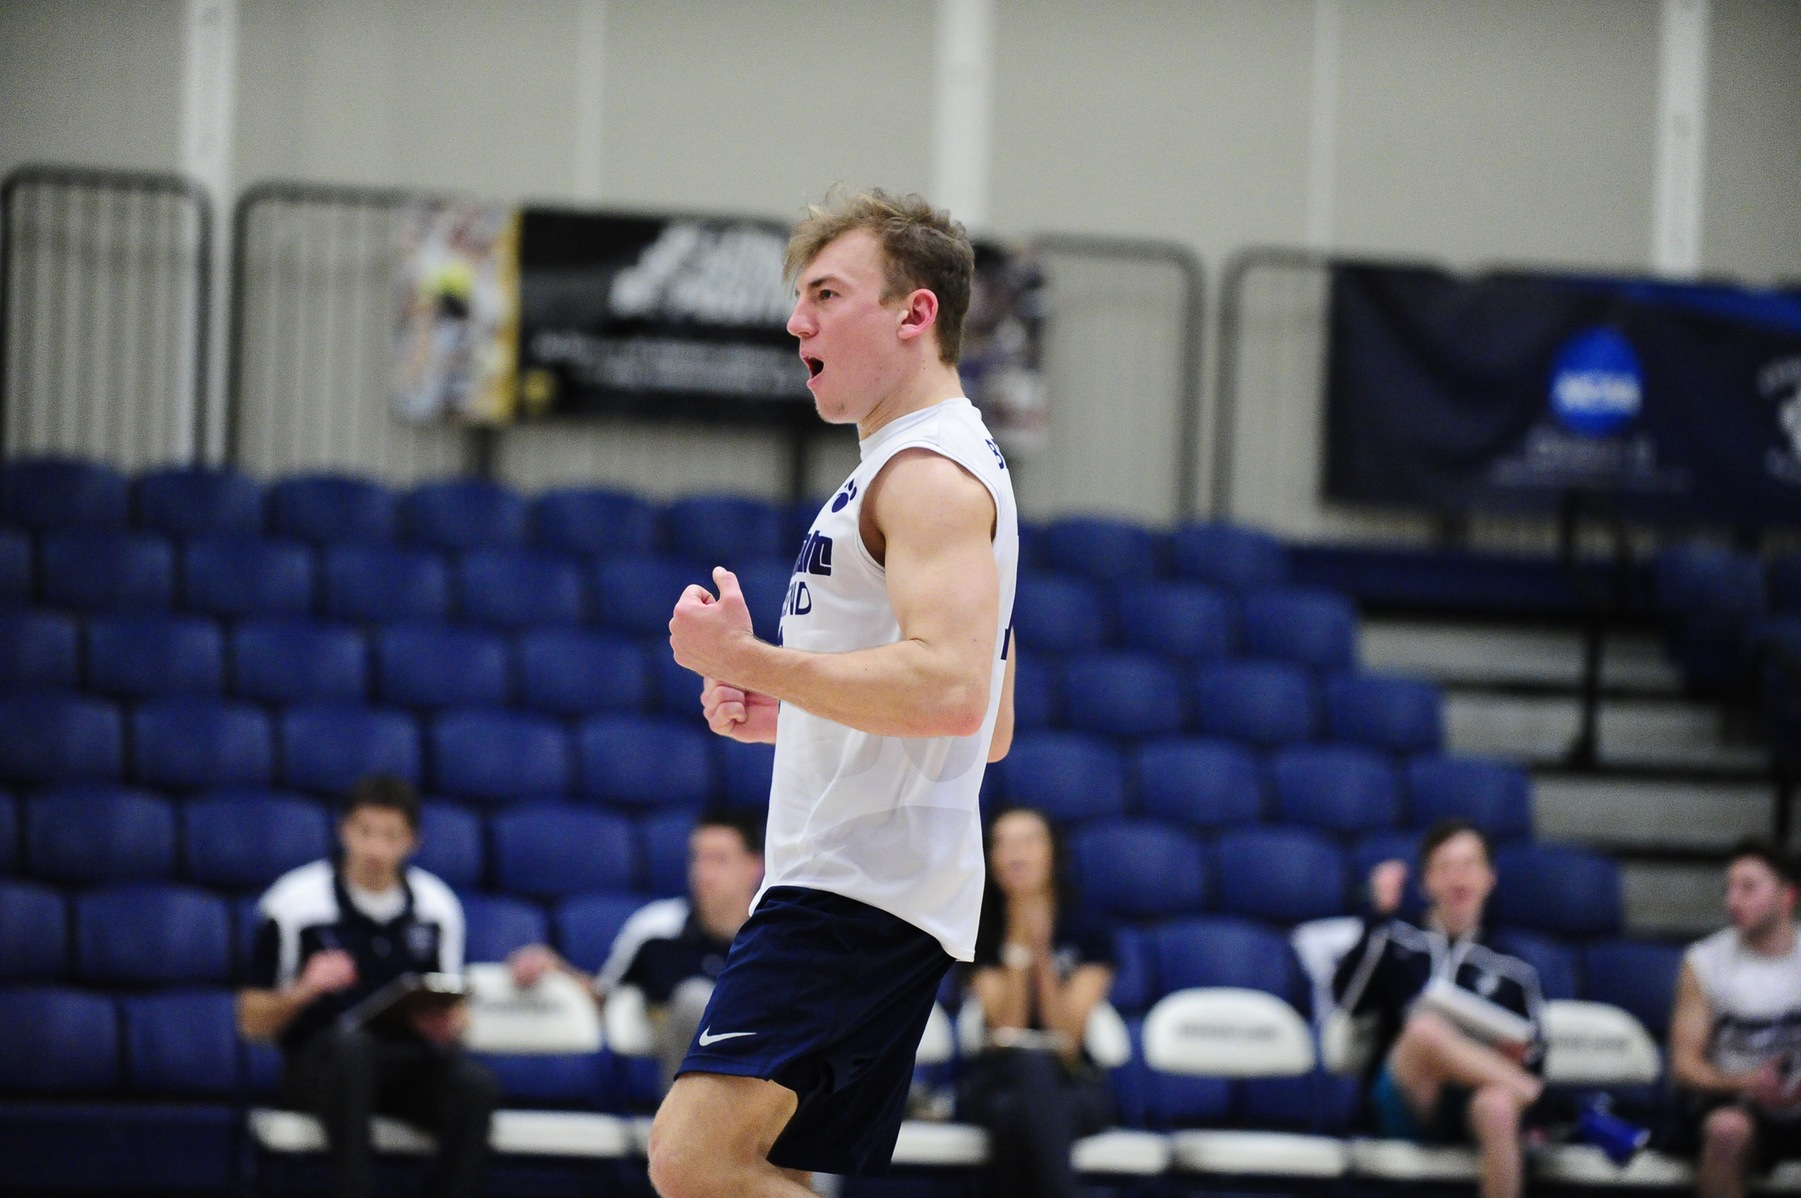 Hildebrand Named AMCC/ECAC Athlete of the Week